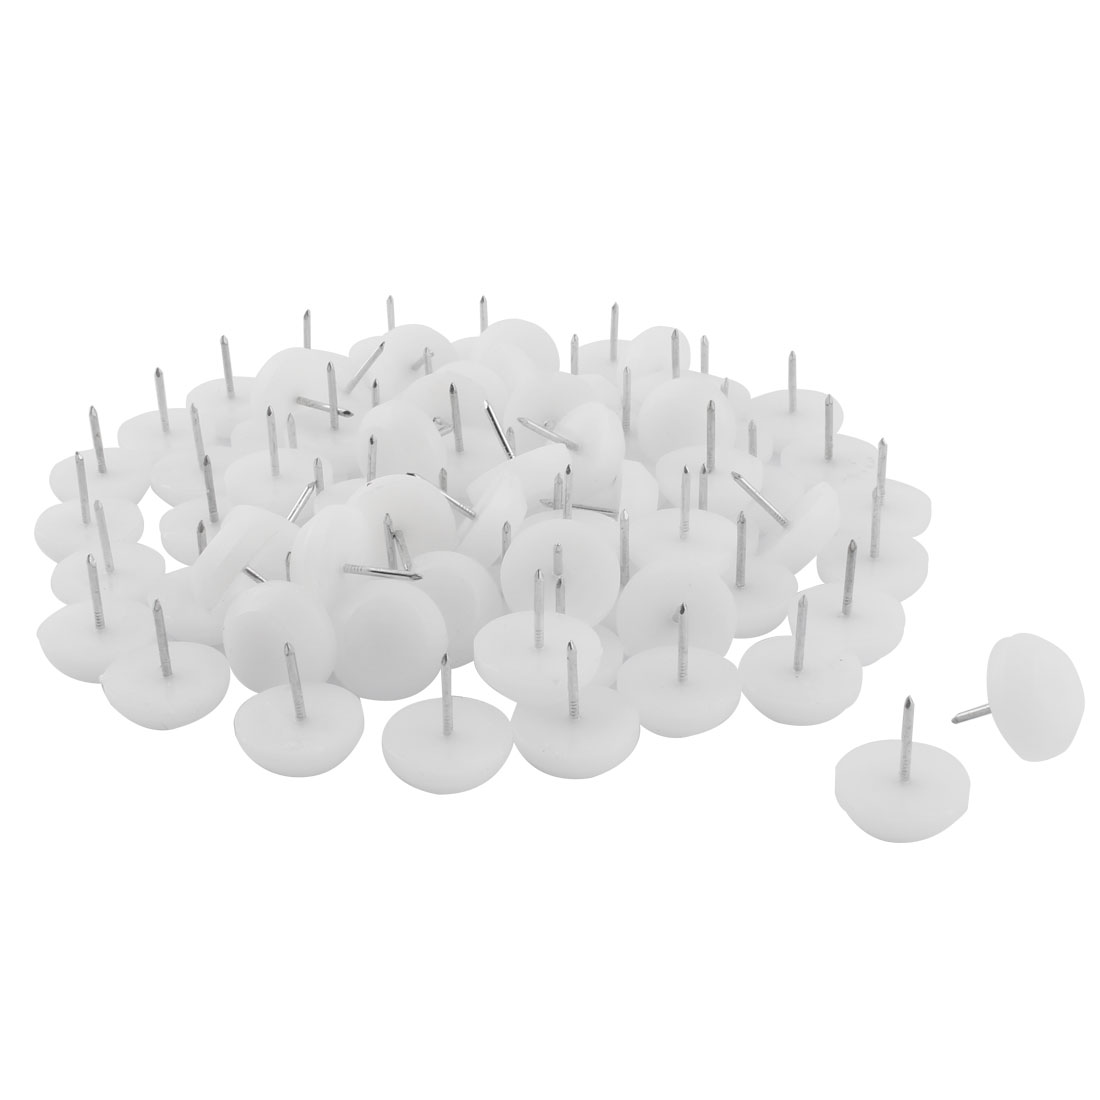 Furniture Table Chair Plastic Base Leg Floor Protector Nails Pad White 2.3cm Dia 80pcs